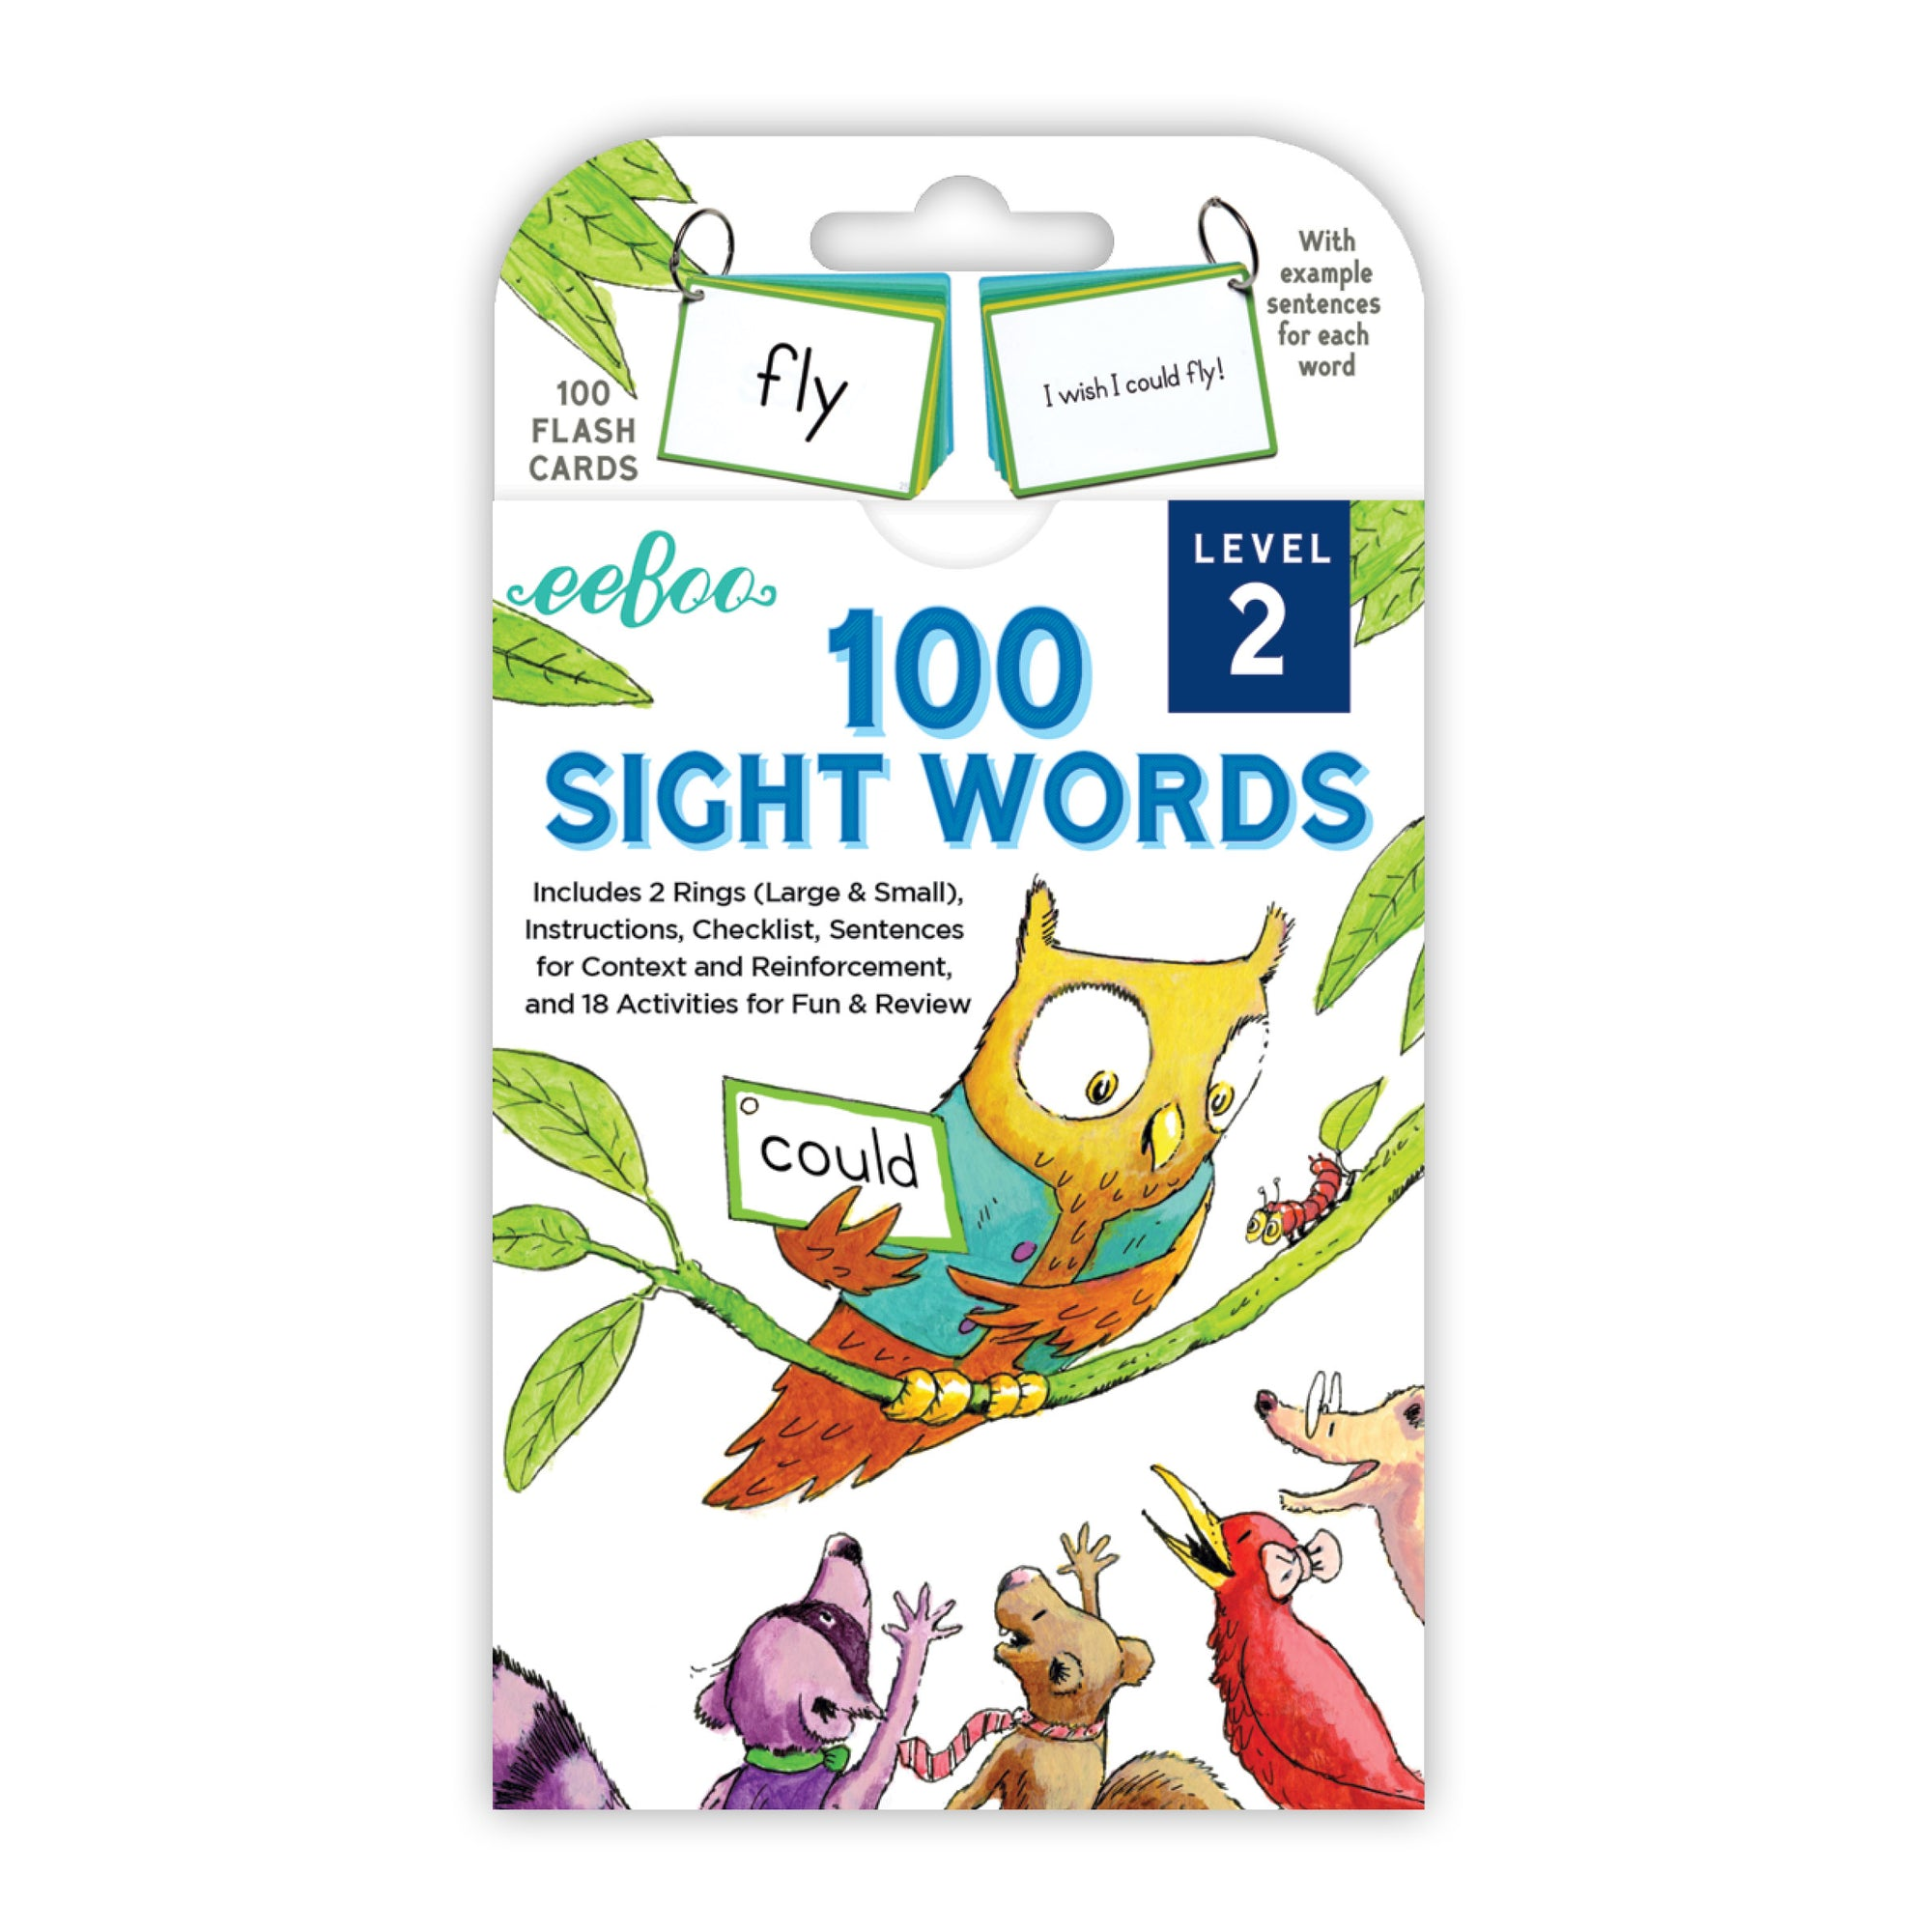 100 Sight Words Level 3 - eeBoo